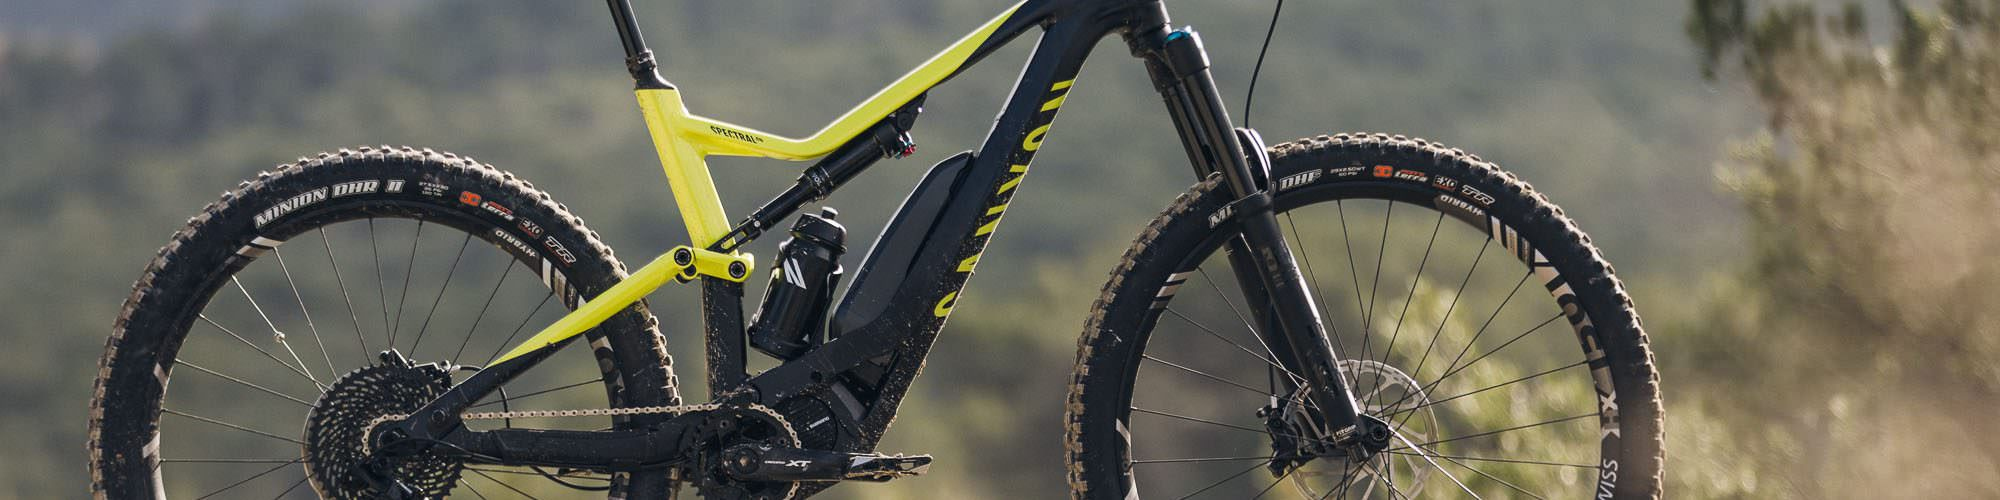 First Ride Review: Canyon Spectral:ON - Fashionably late or